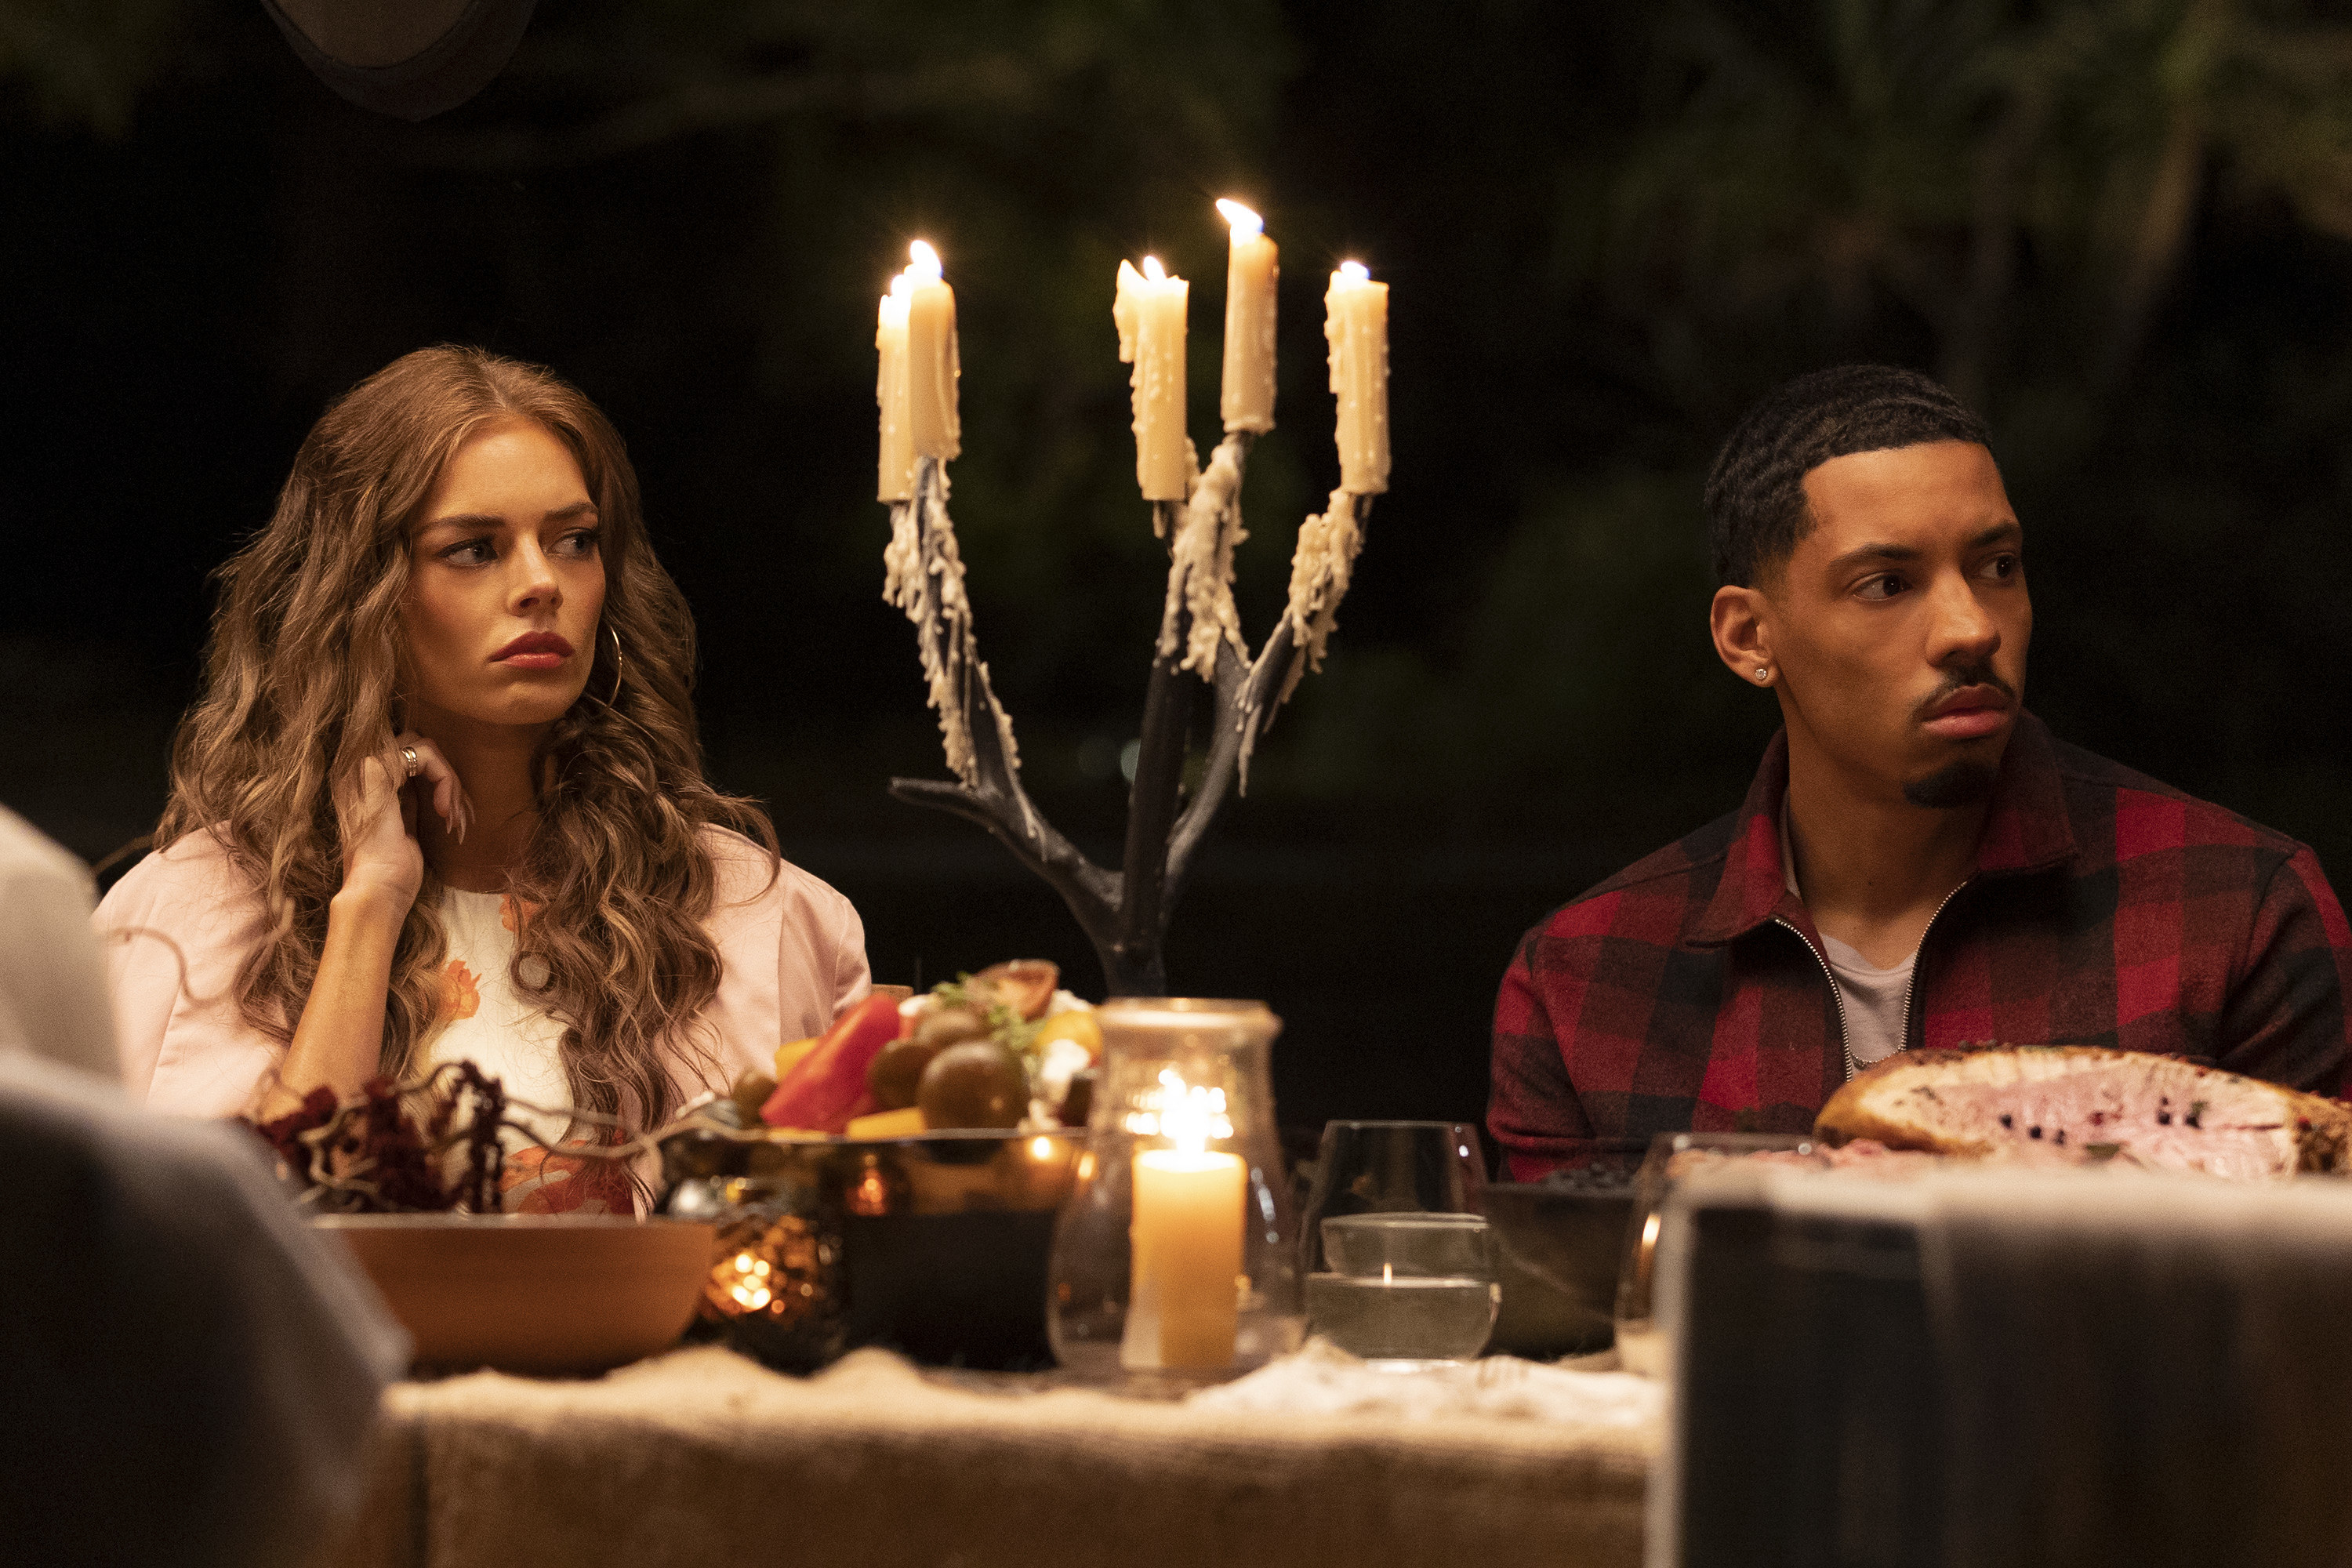 A close up of two characters sitting down at a candle-lit dinner table; they look worried